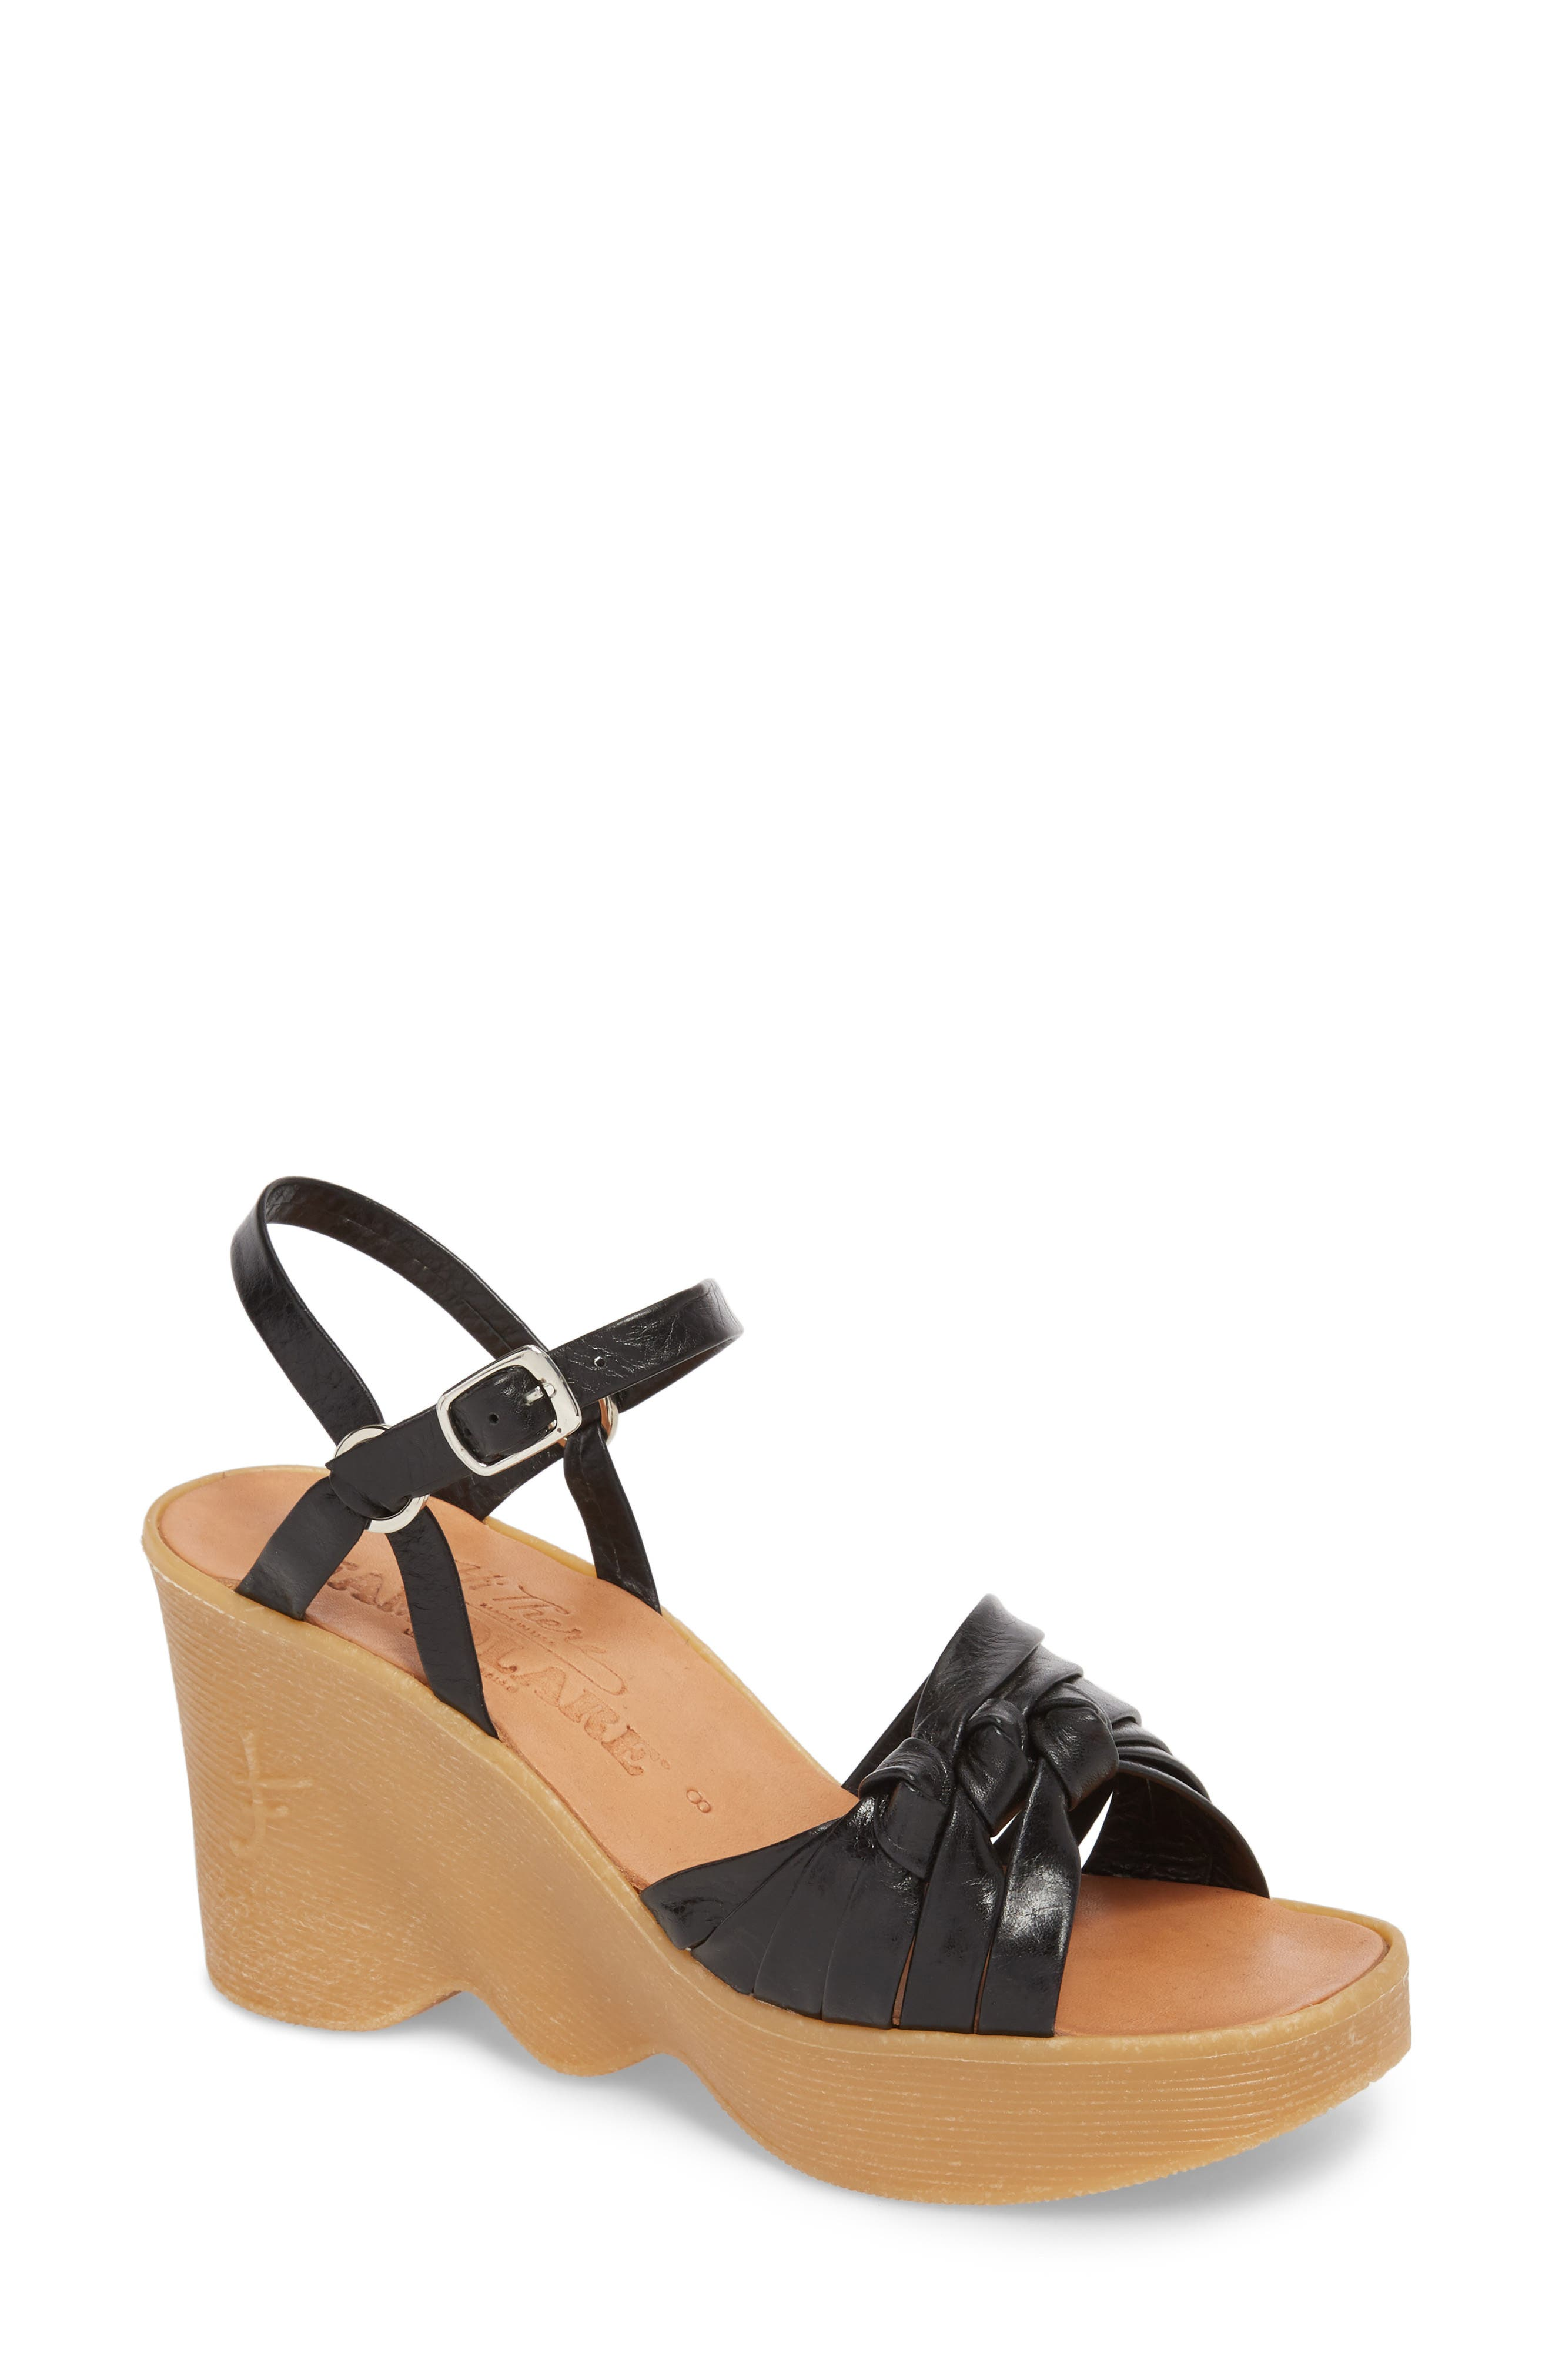 Knot So Fast Wedge Sandal,                         Main,                         color, COAL LEATHER